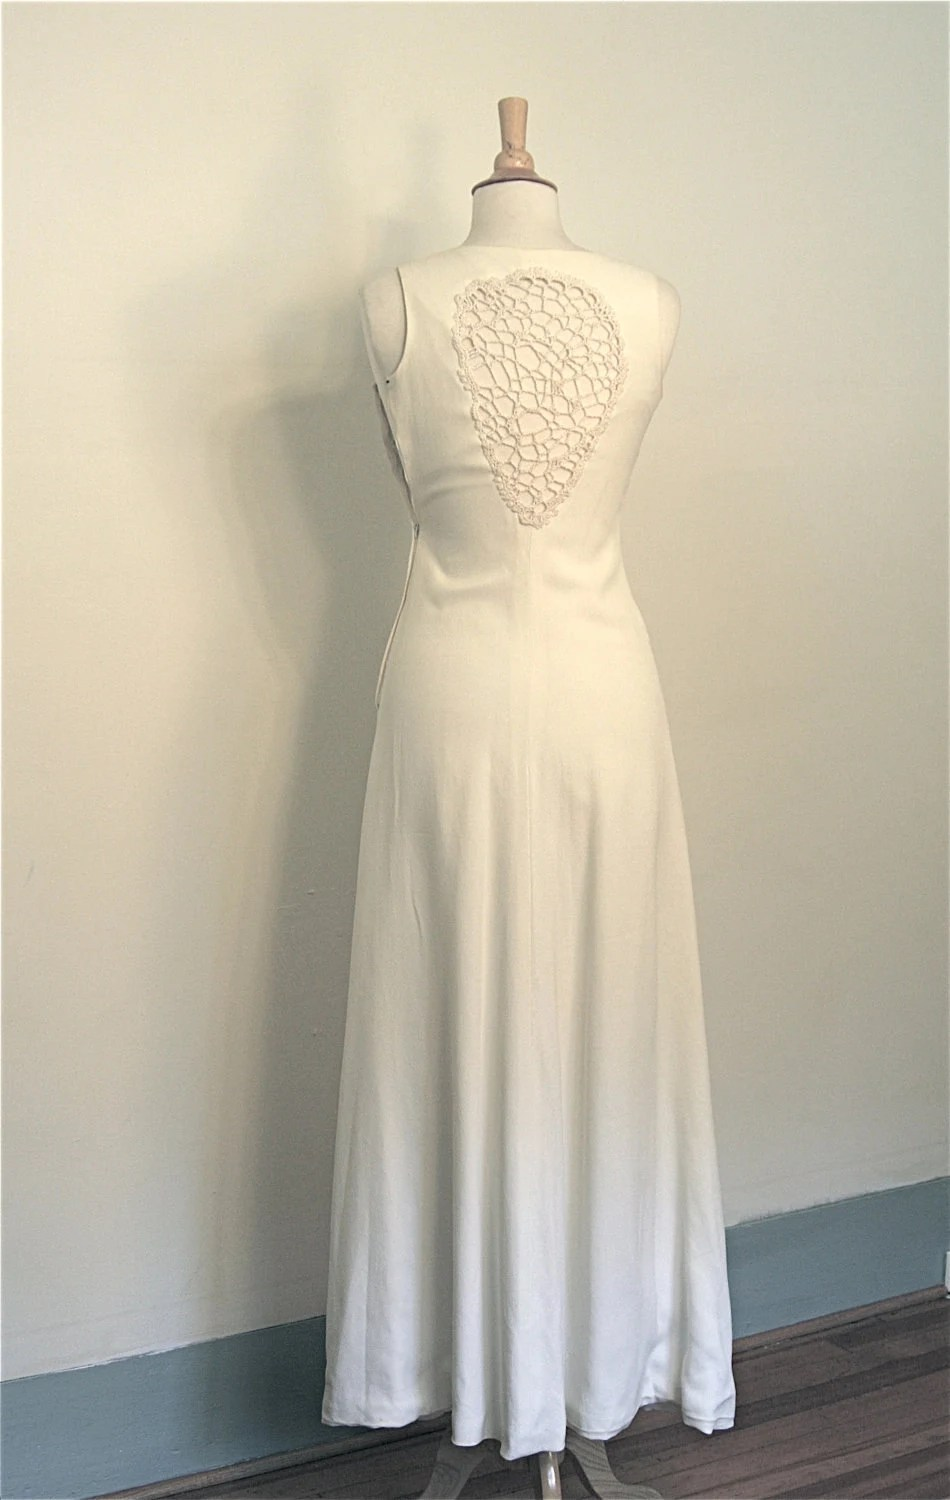 Vintage Late 60s early 70s HELGA HOWIE Designer Maxi Dress